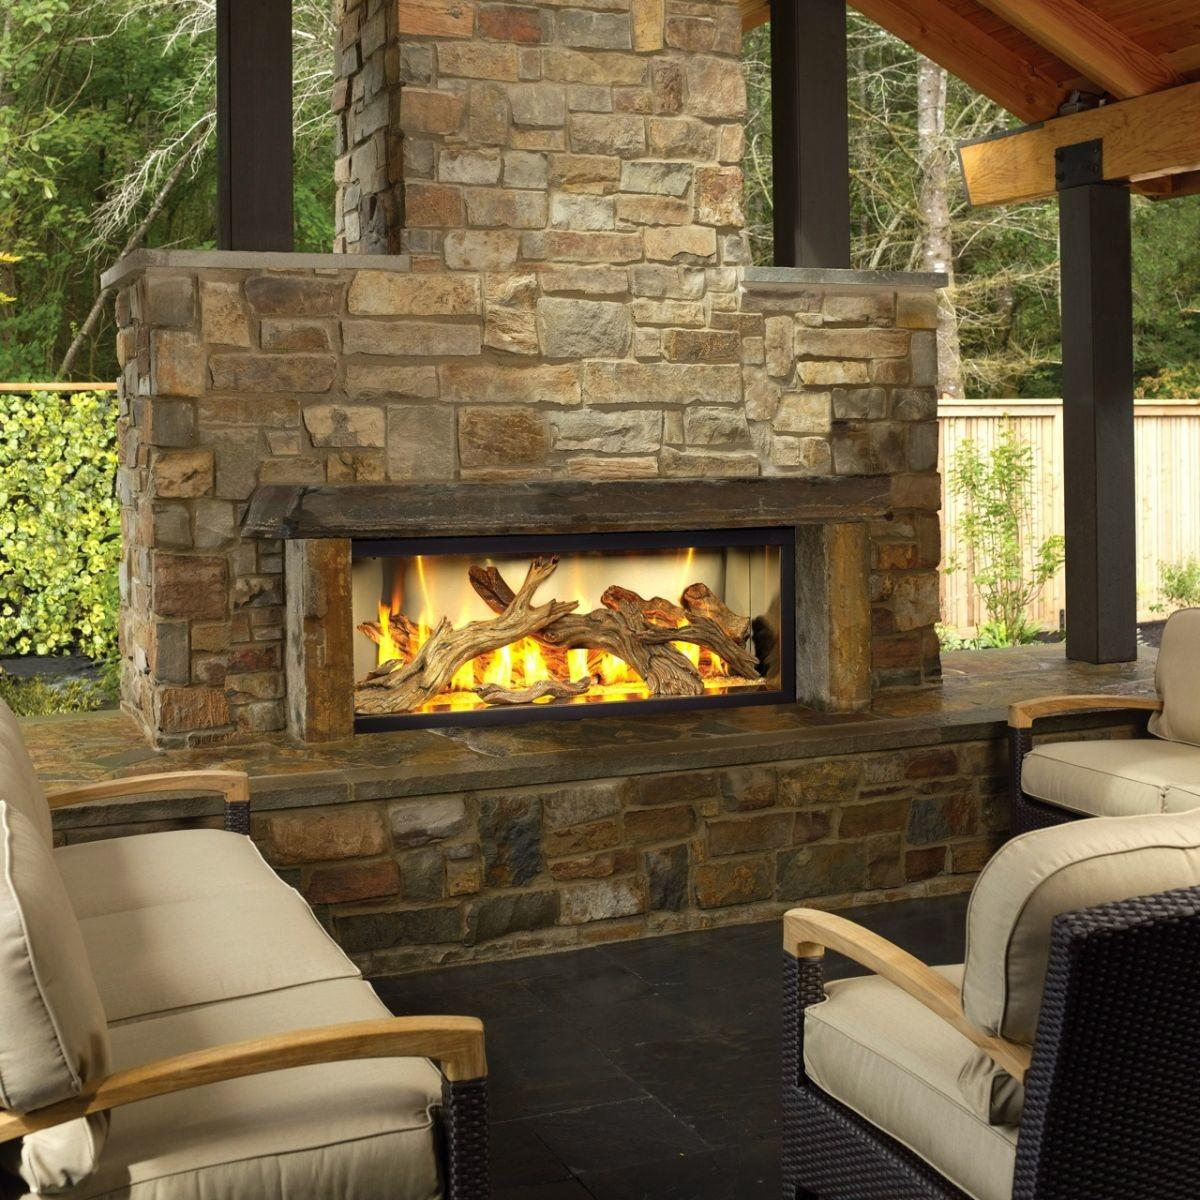 Incredible Decorate Around Fireplace Outdoor That No One Can